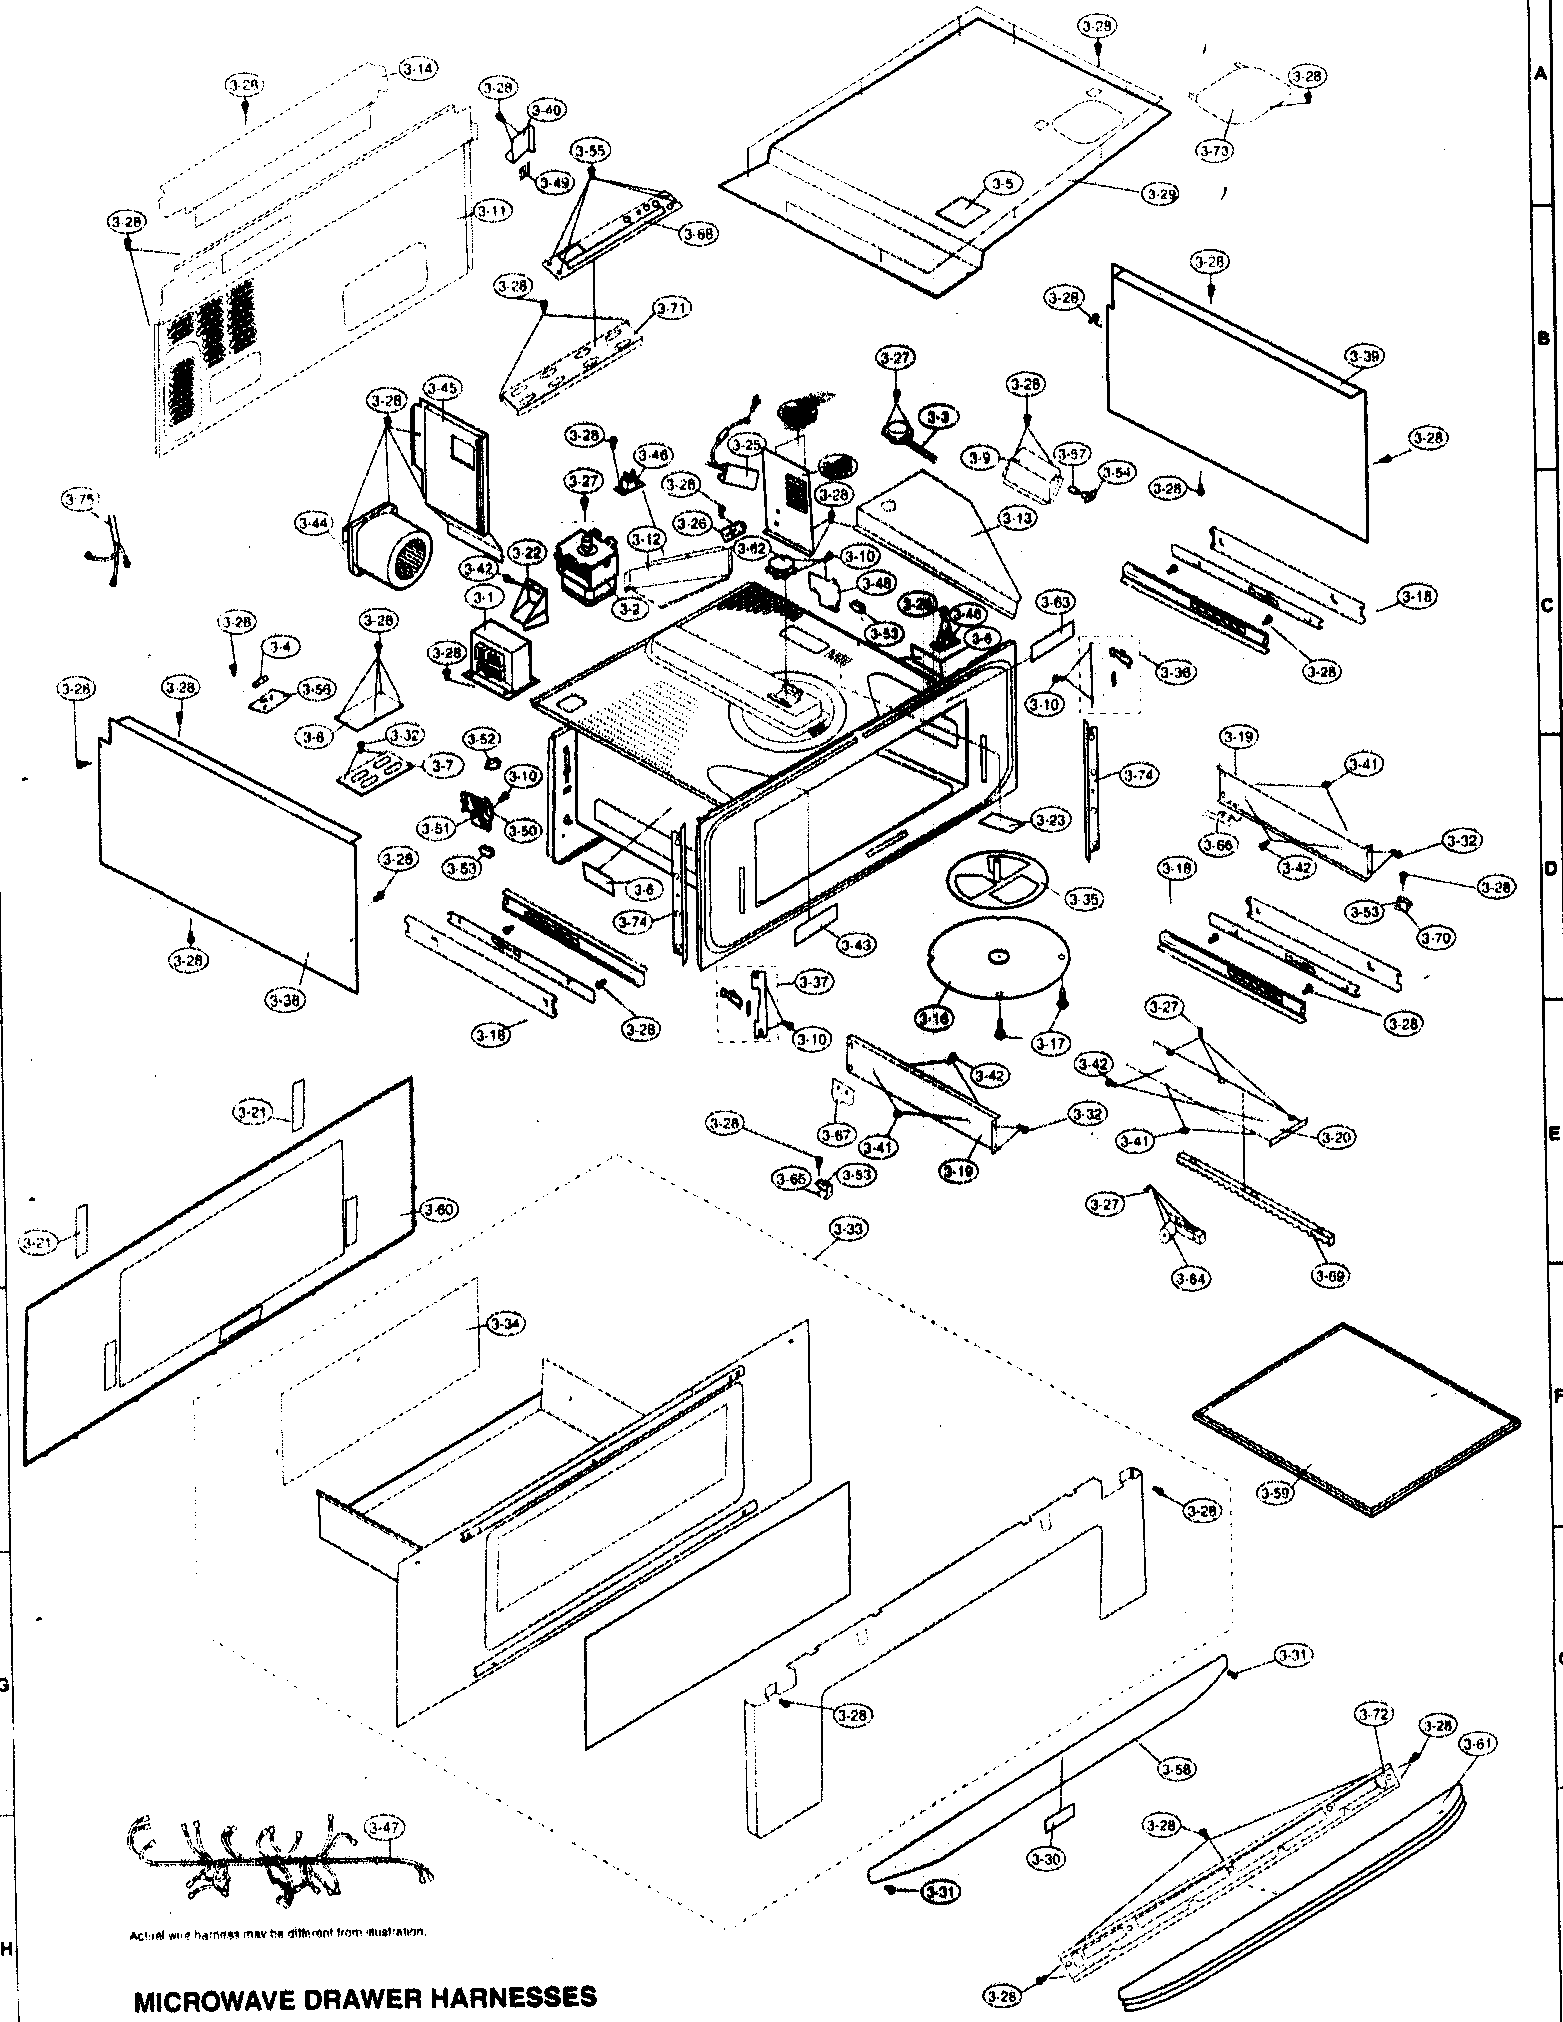 CABINET PARTS Diagram & Parts List for Model kb6014lk